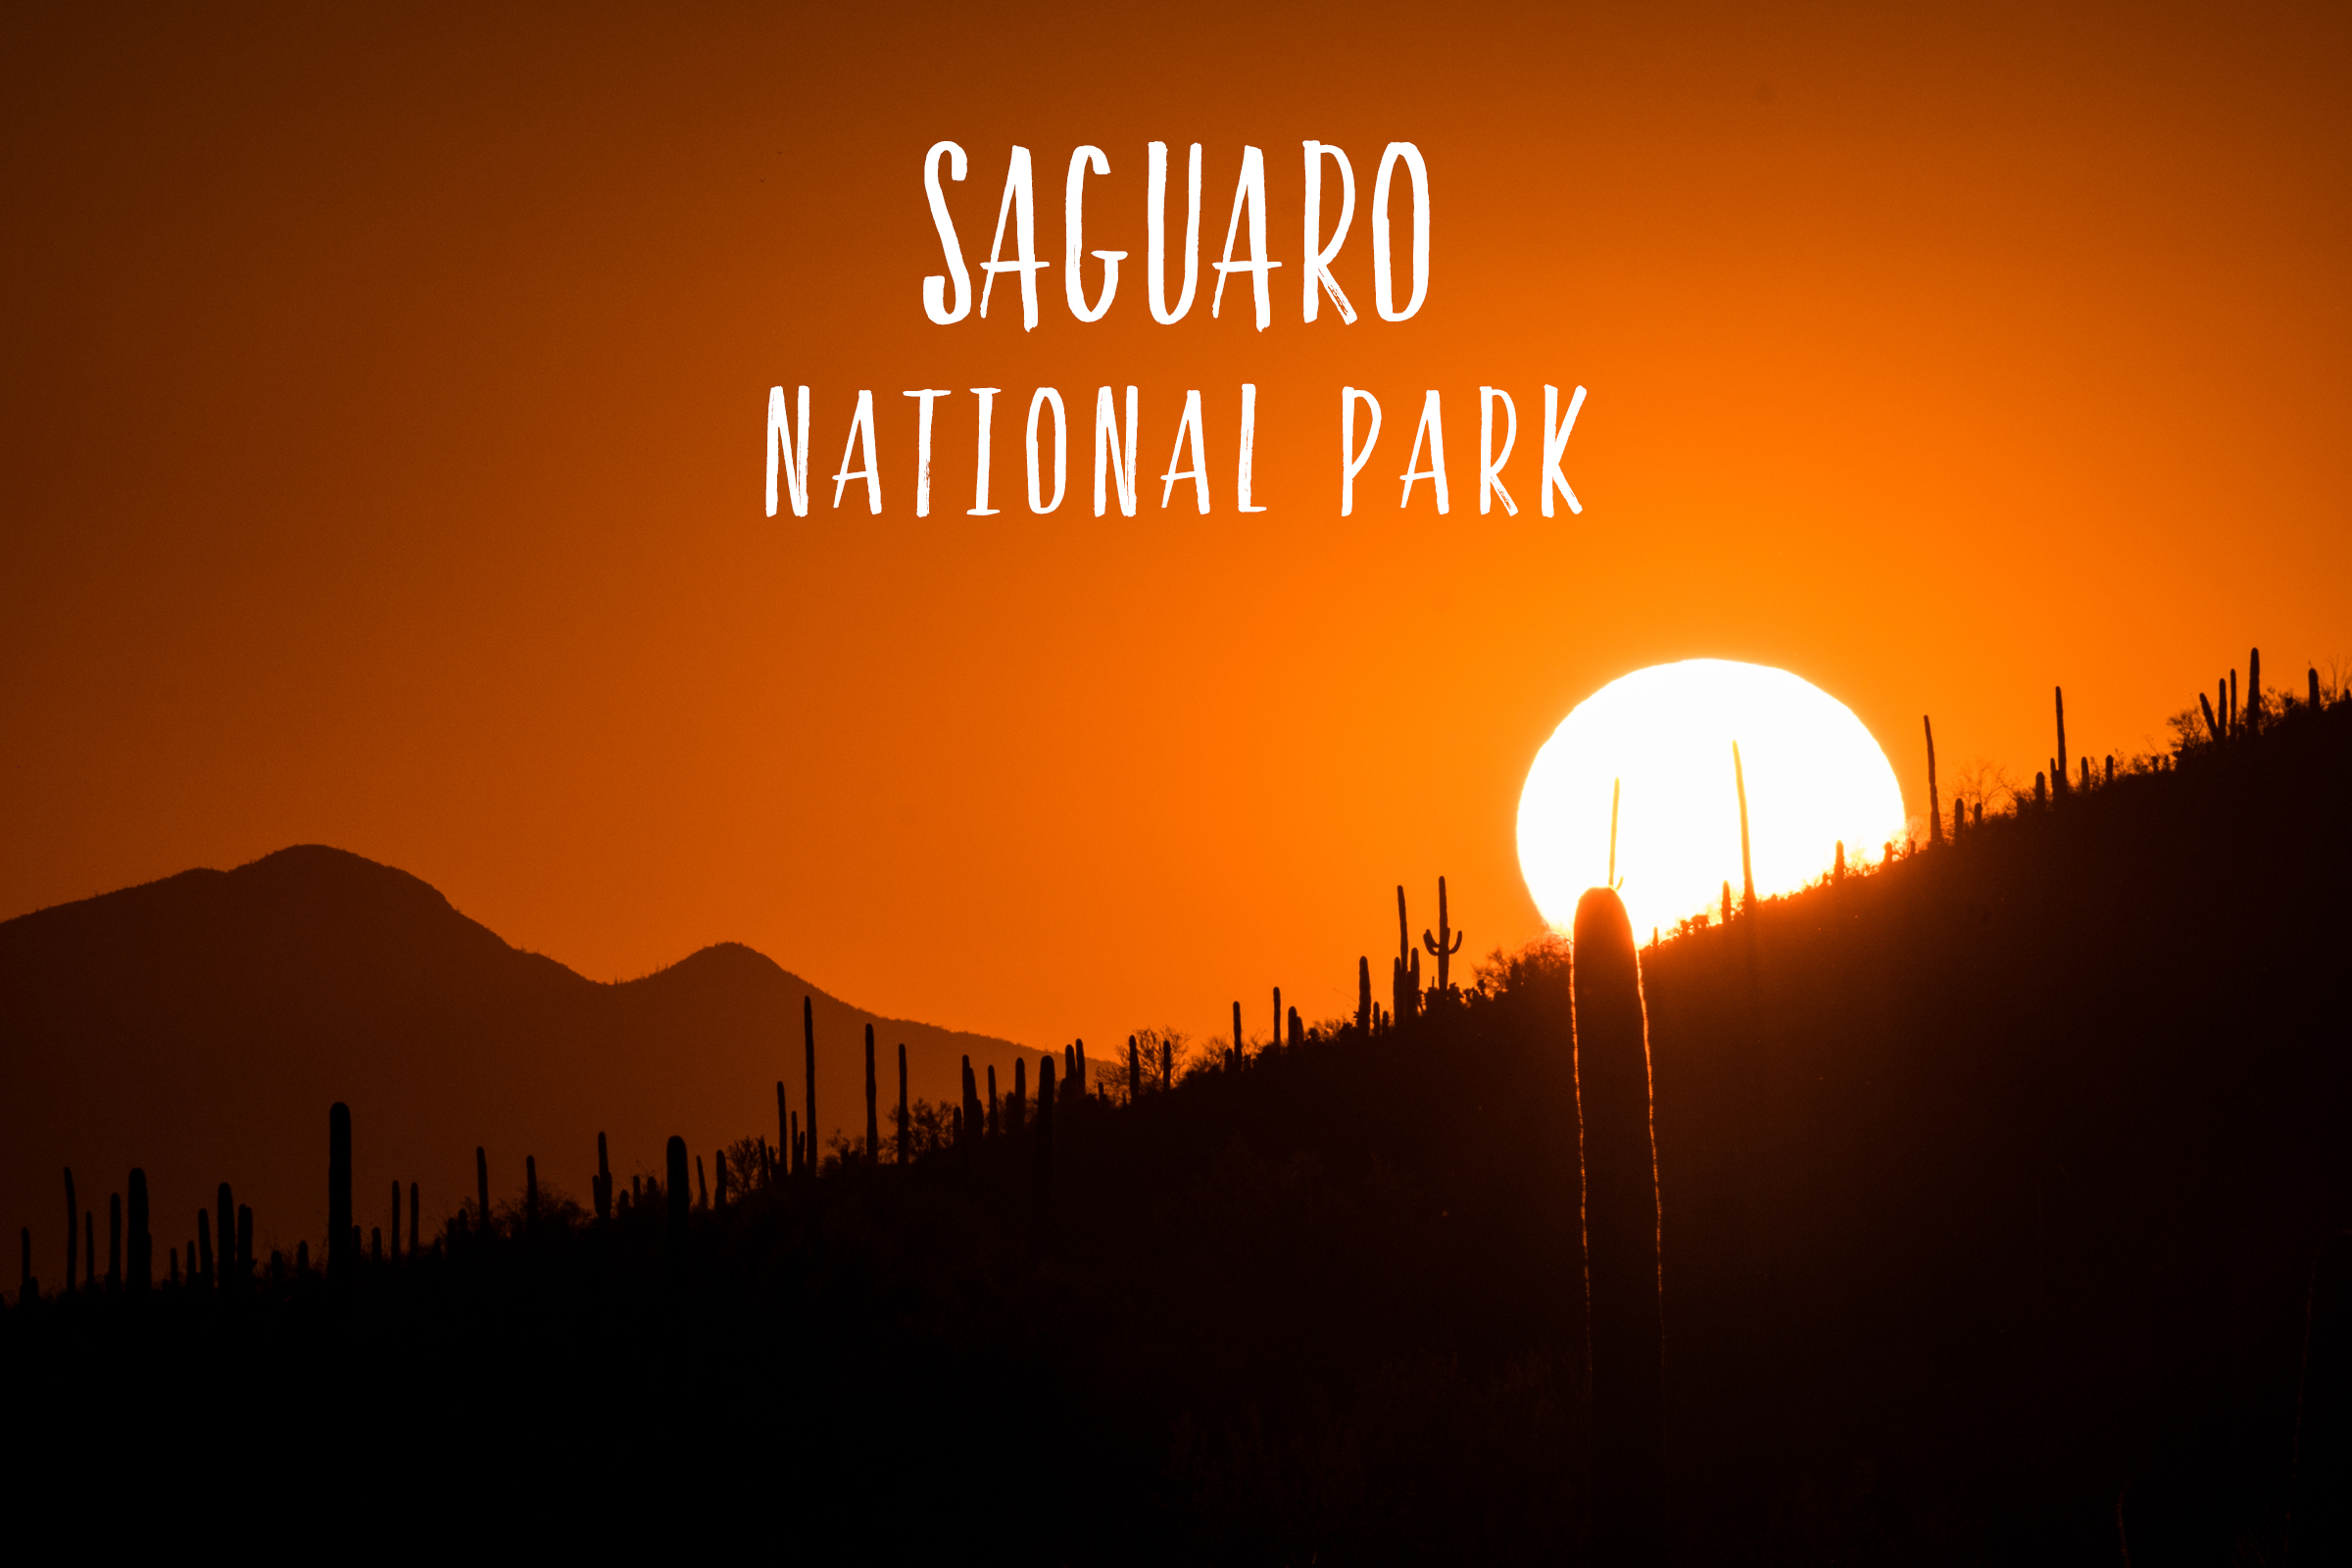 Saguaro National Park | Park 16/59